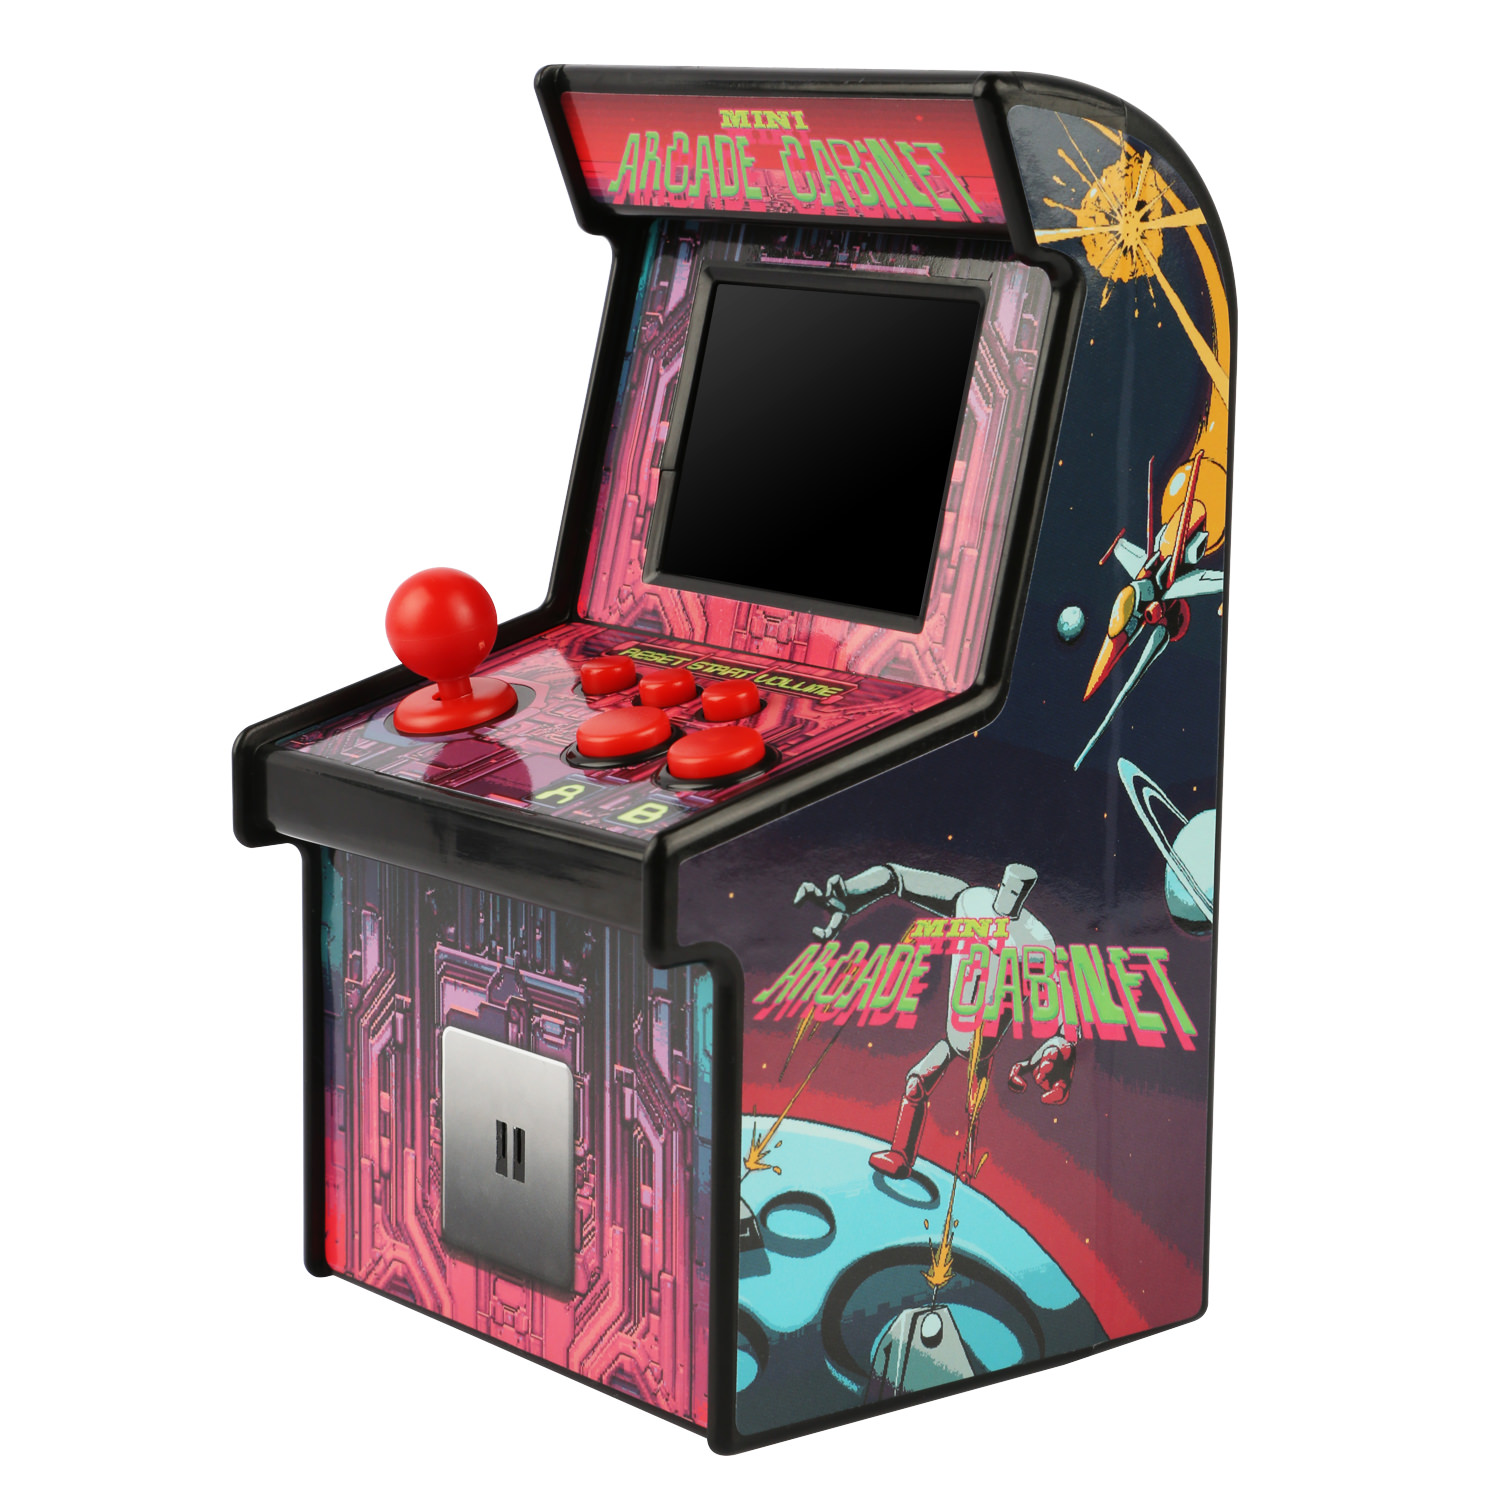 7d9356f8c763 Portable Mini 200-Game 16-Bit Retro Arcade Cabinet - Walmart.com